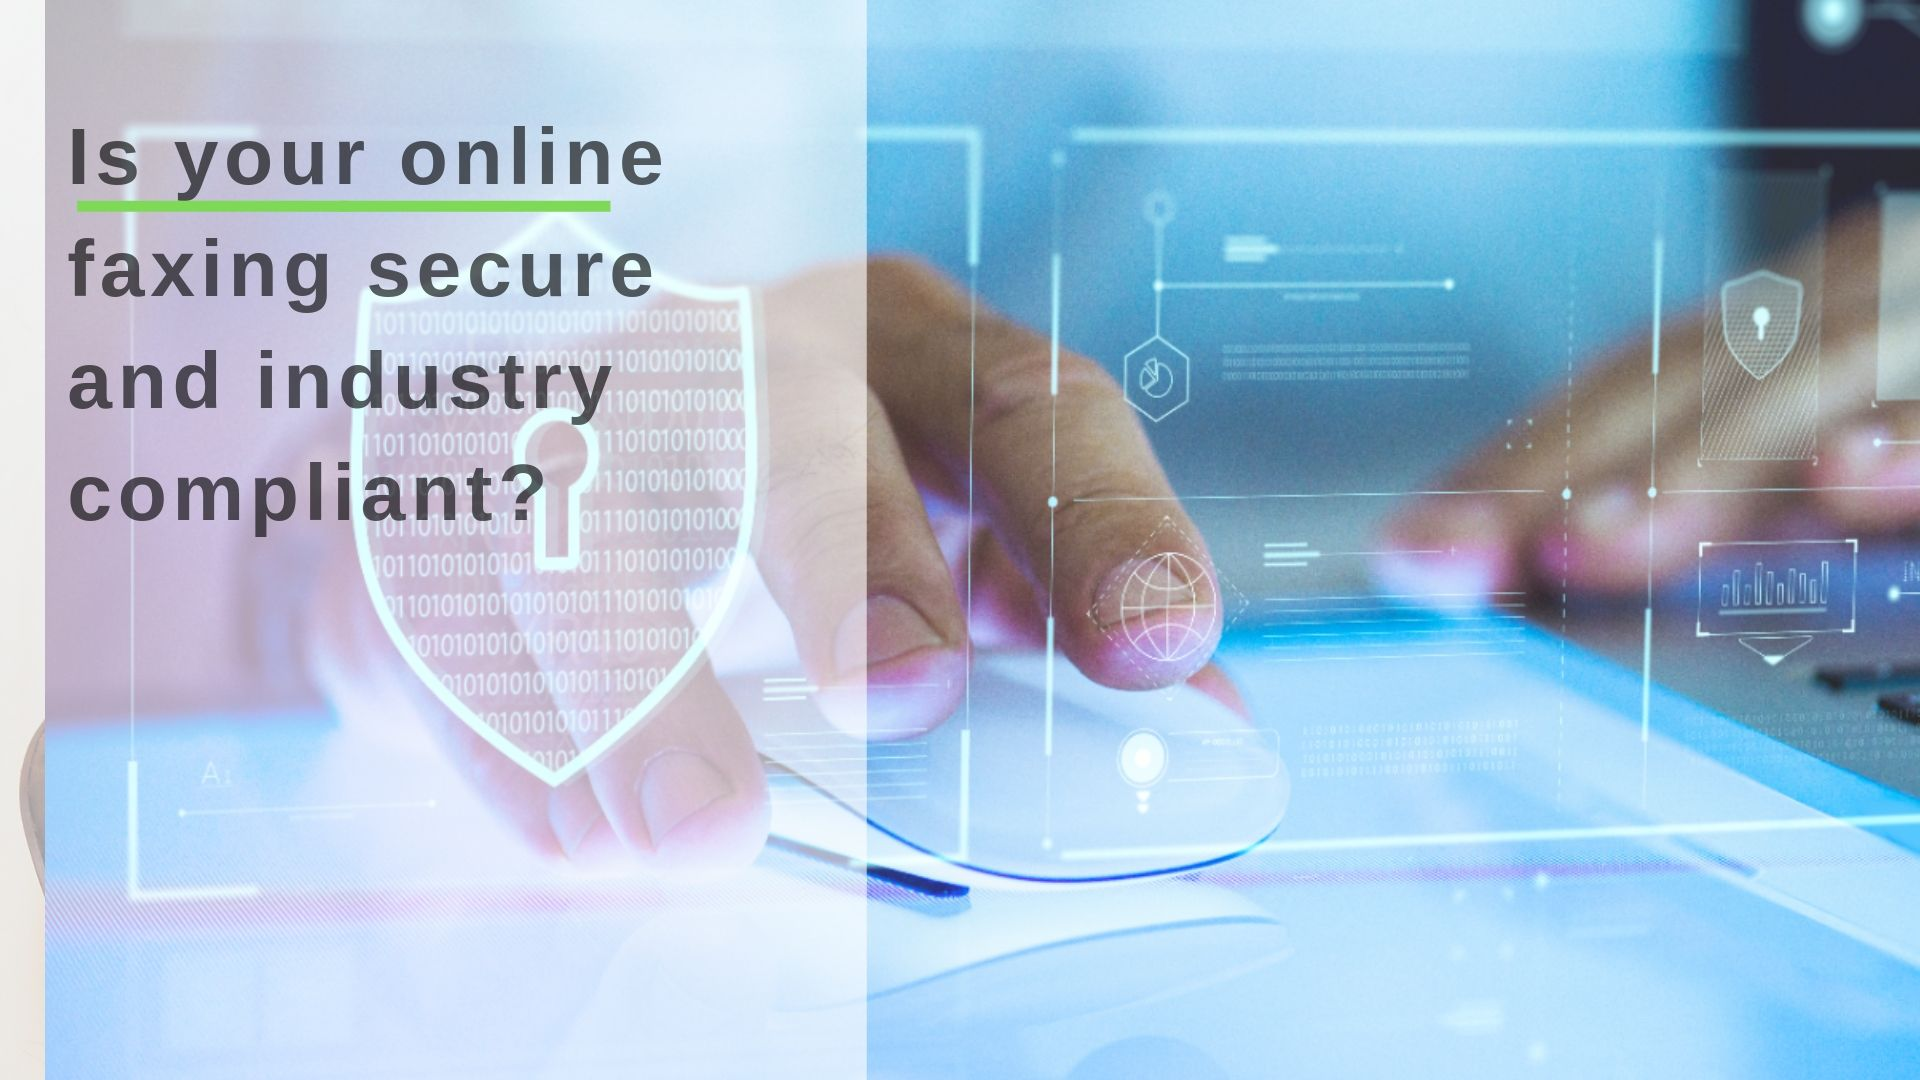 secure-compliant-online-faxing-for-your-industry